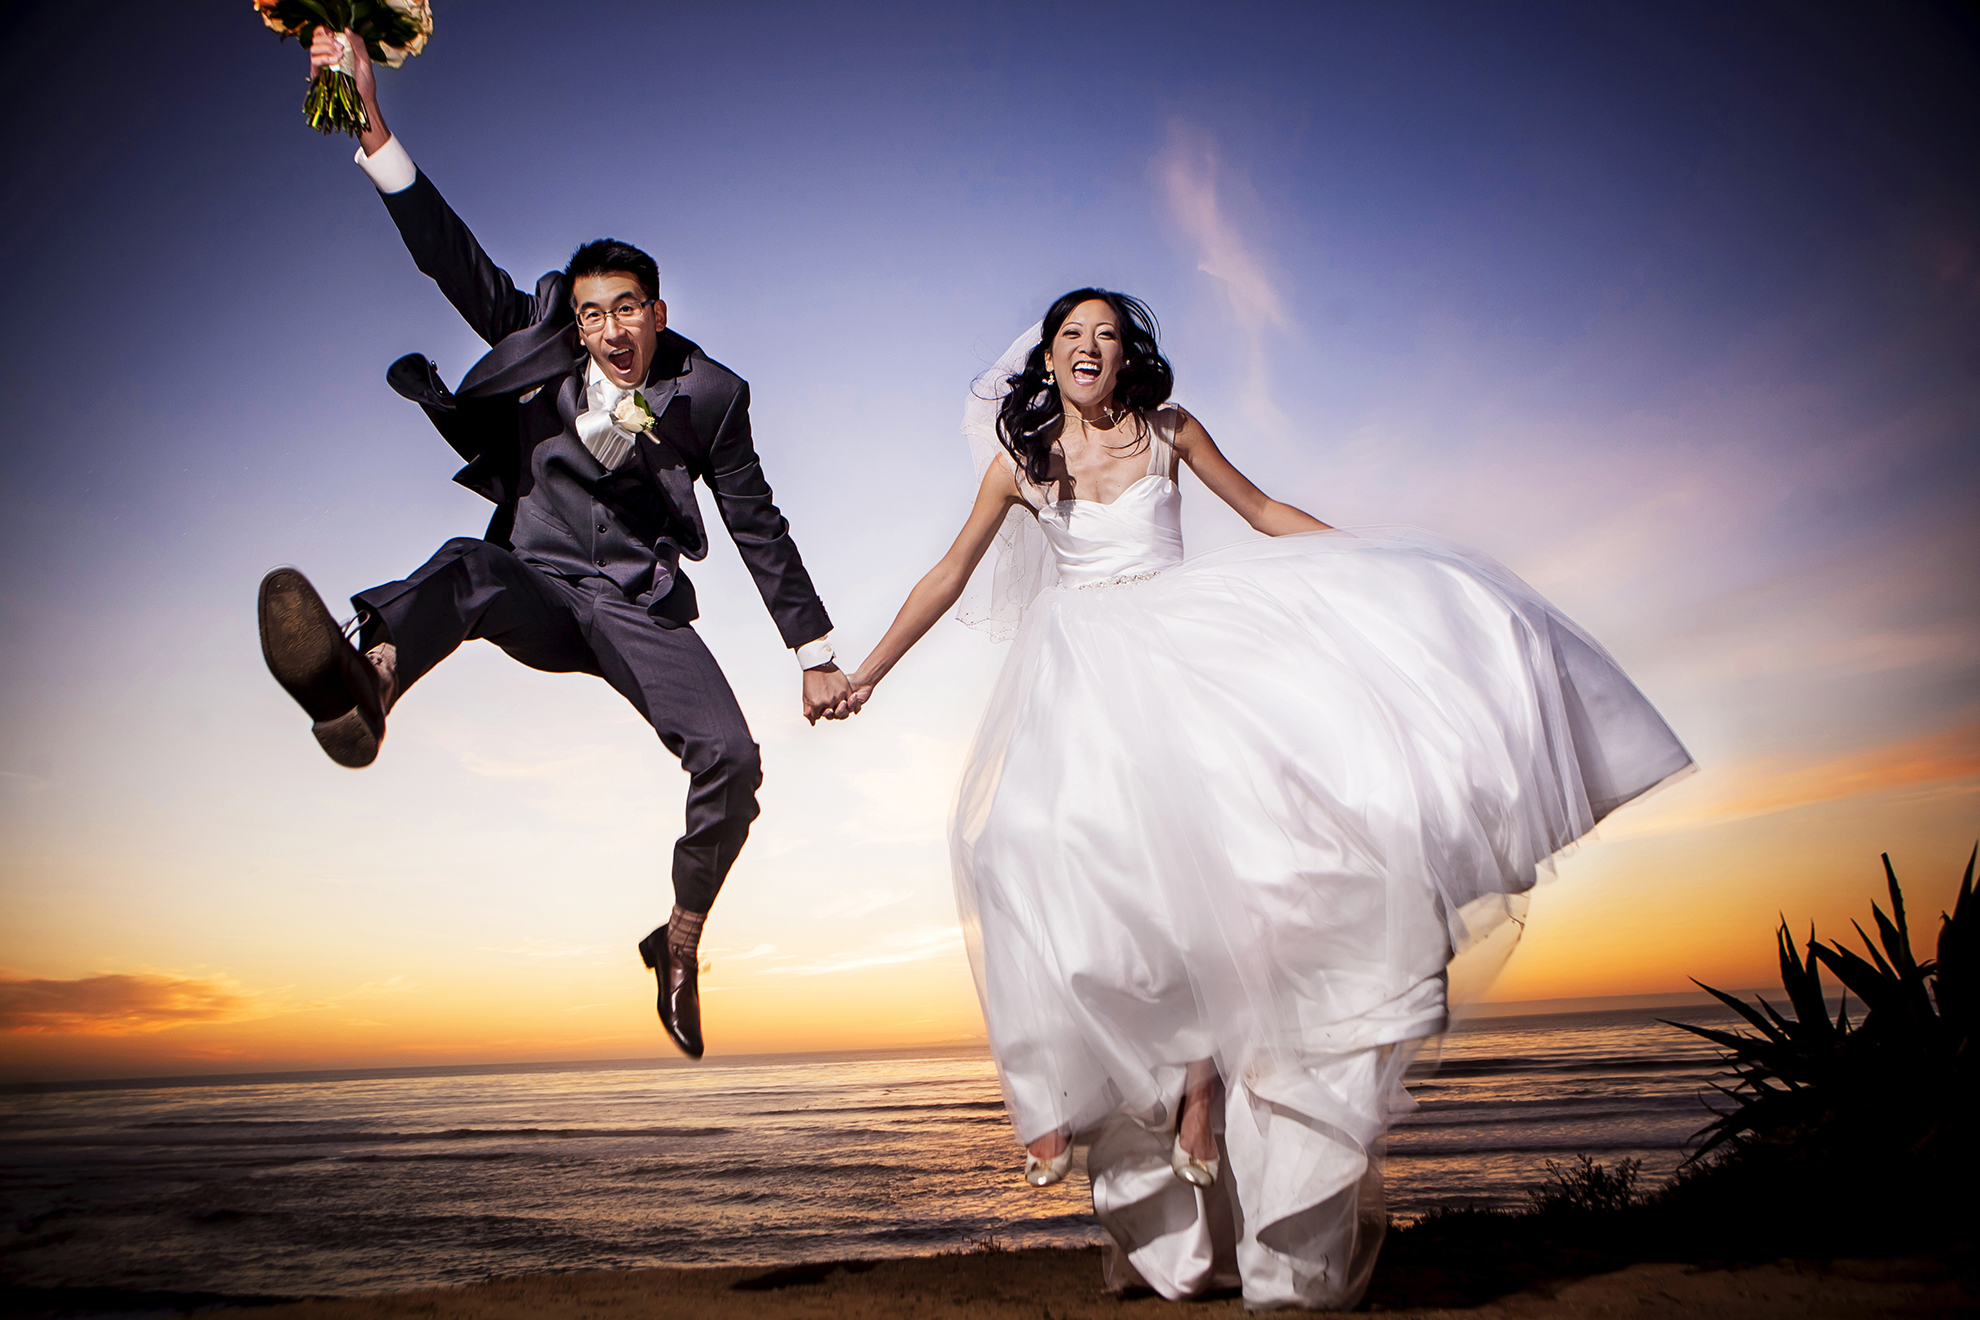 Wedding Photography Pricing - Fun San Diego Weddings